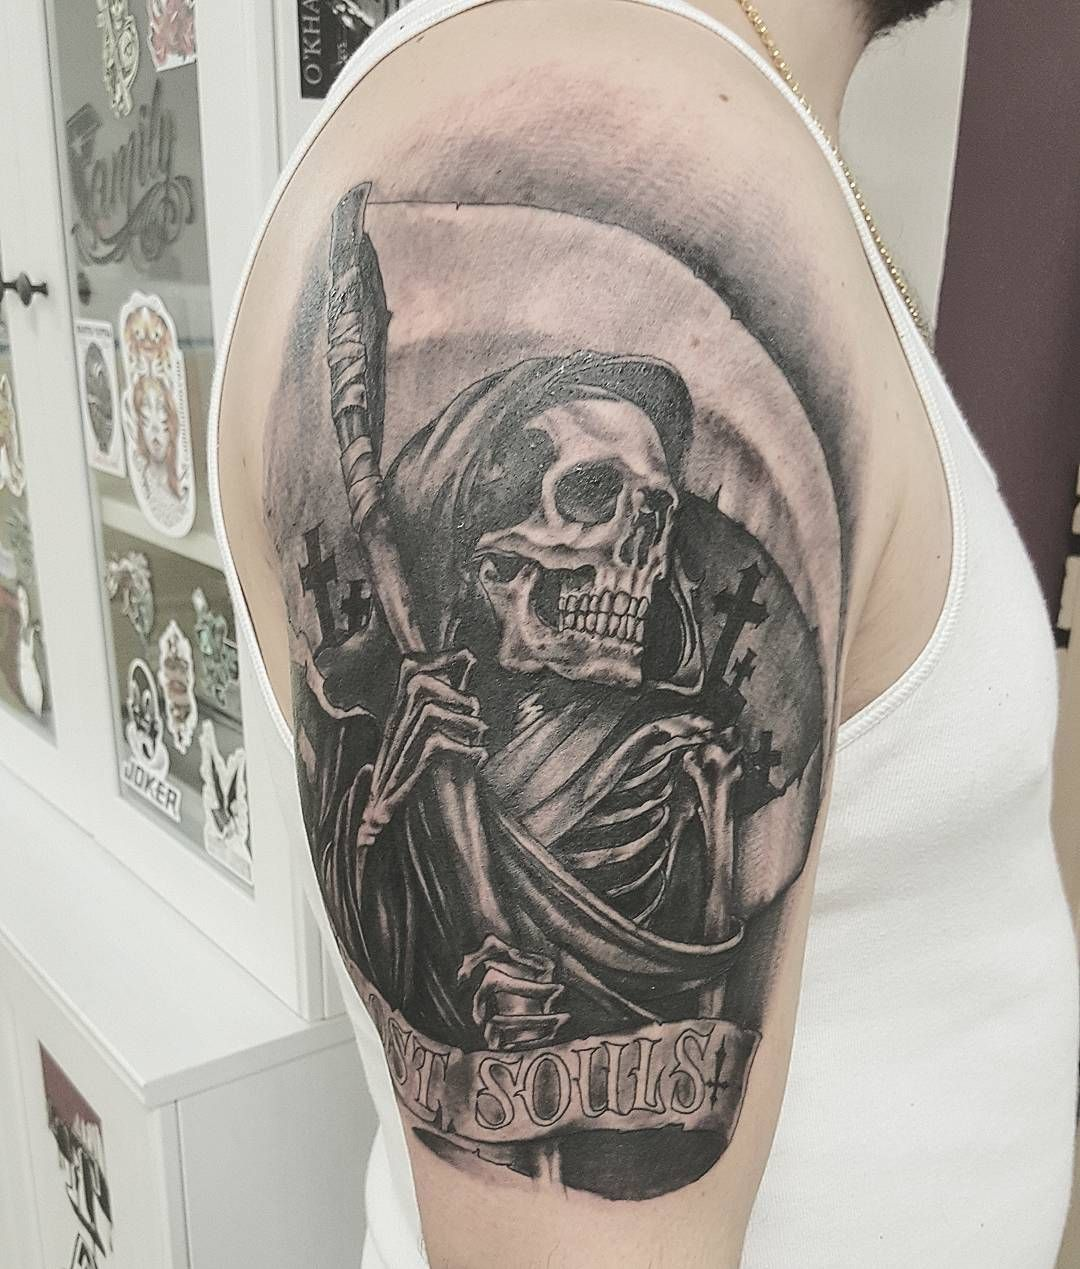 Horrible tattoo ideas - 30 Horrible Grim Reaper Tattoo Designs Meanings Check More At Http Tattoo